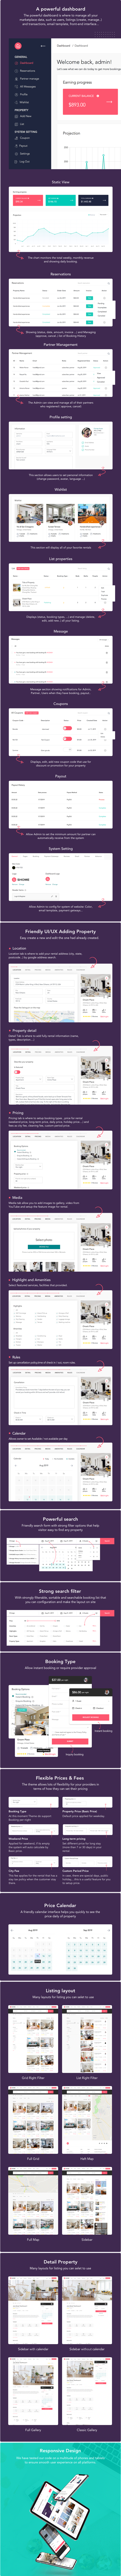 SHome | Marketplace Real Estate WordPress Theme - 8